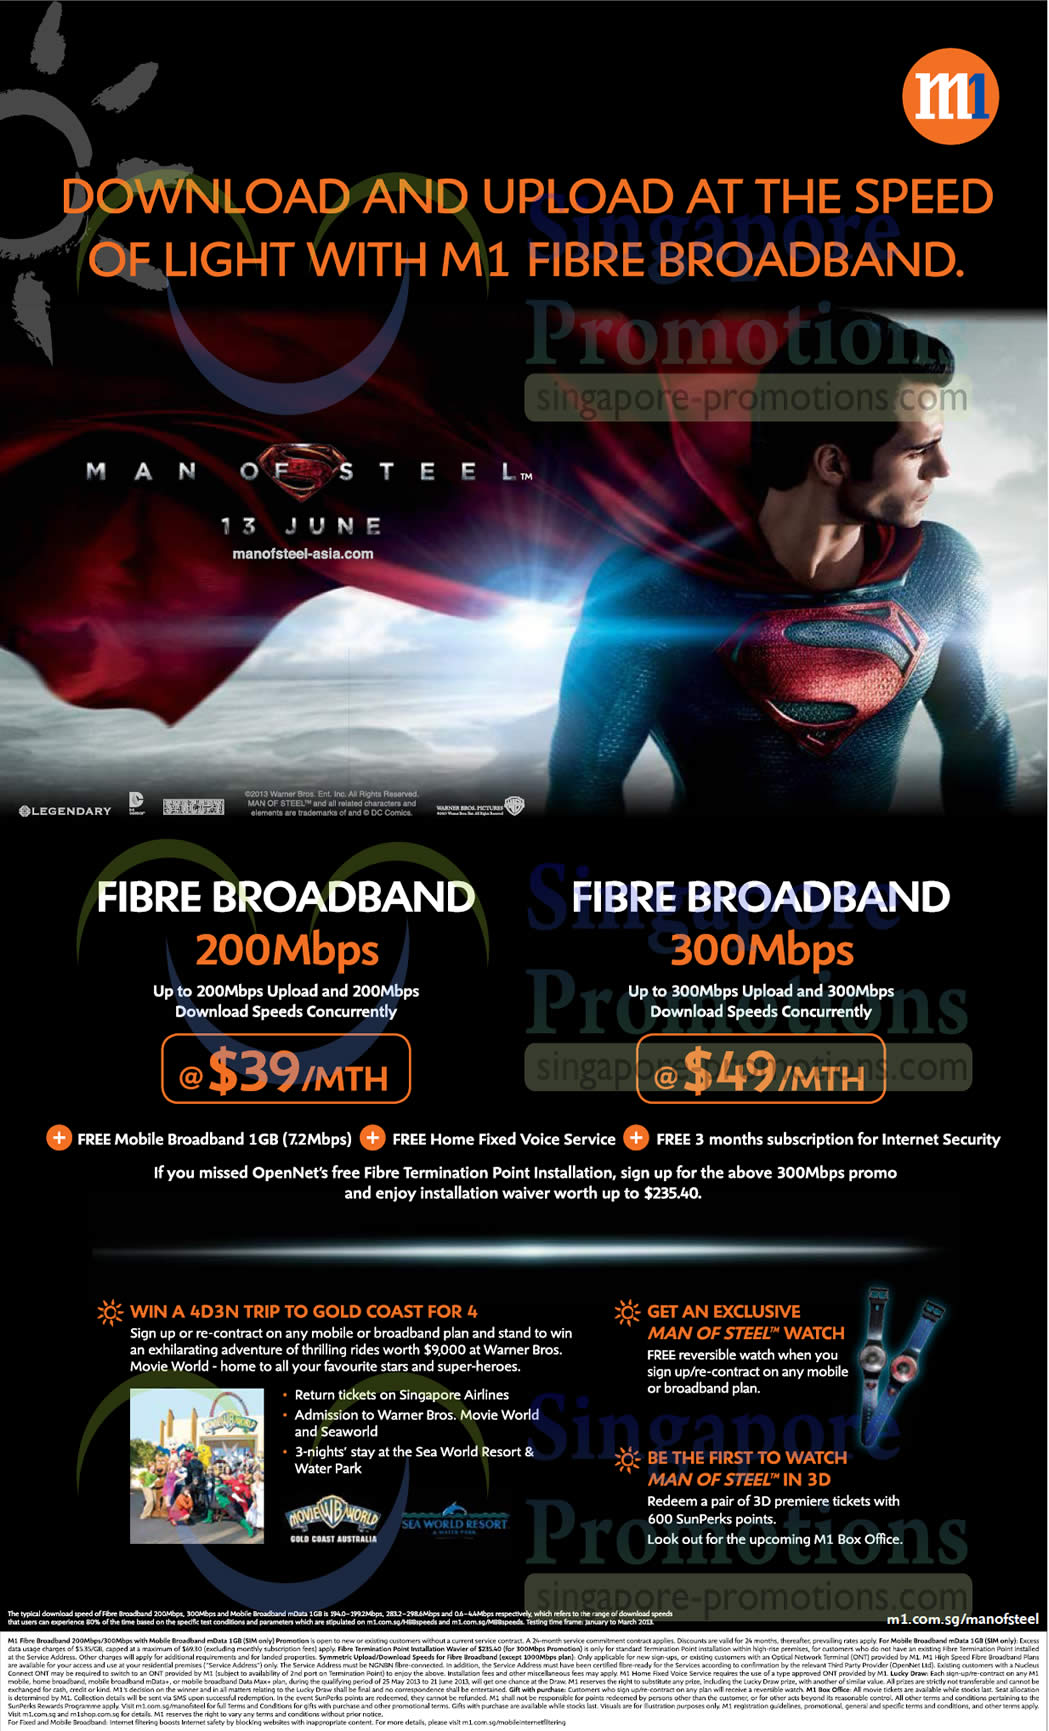 Fibre Broadband Plans, Free Man of Steel Premiums